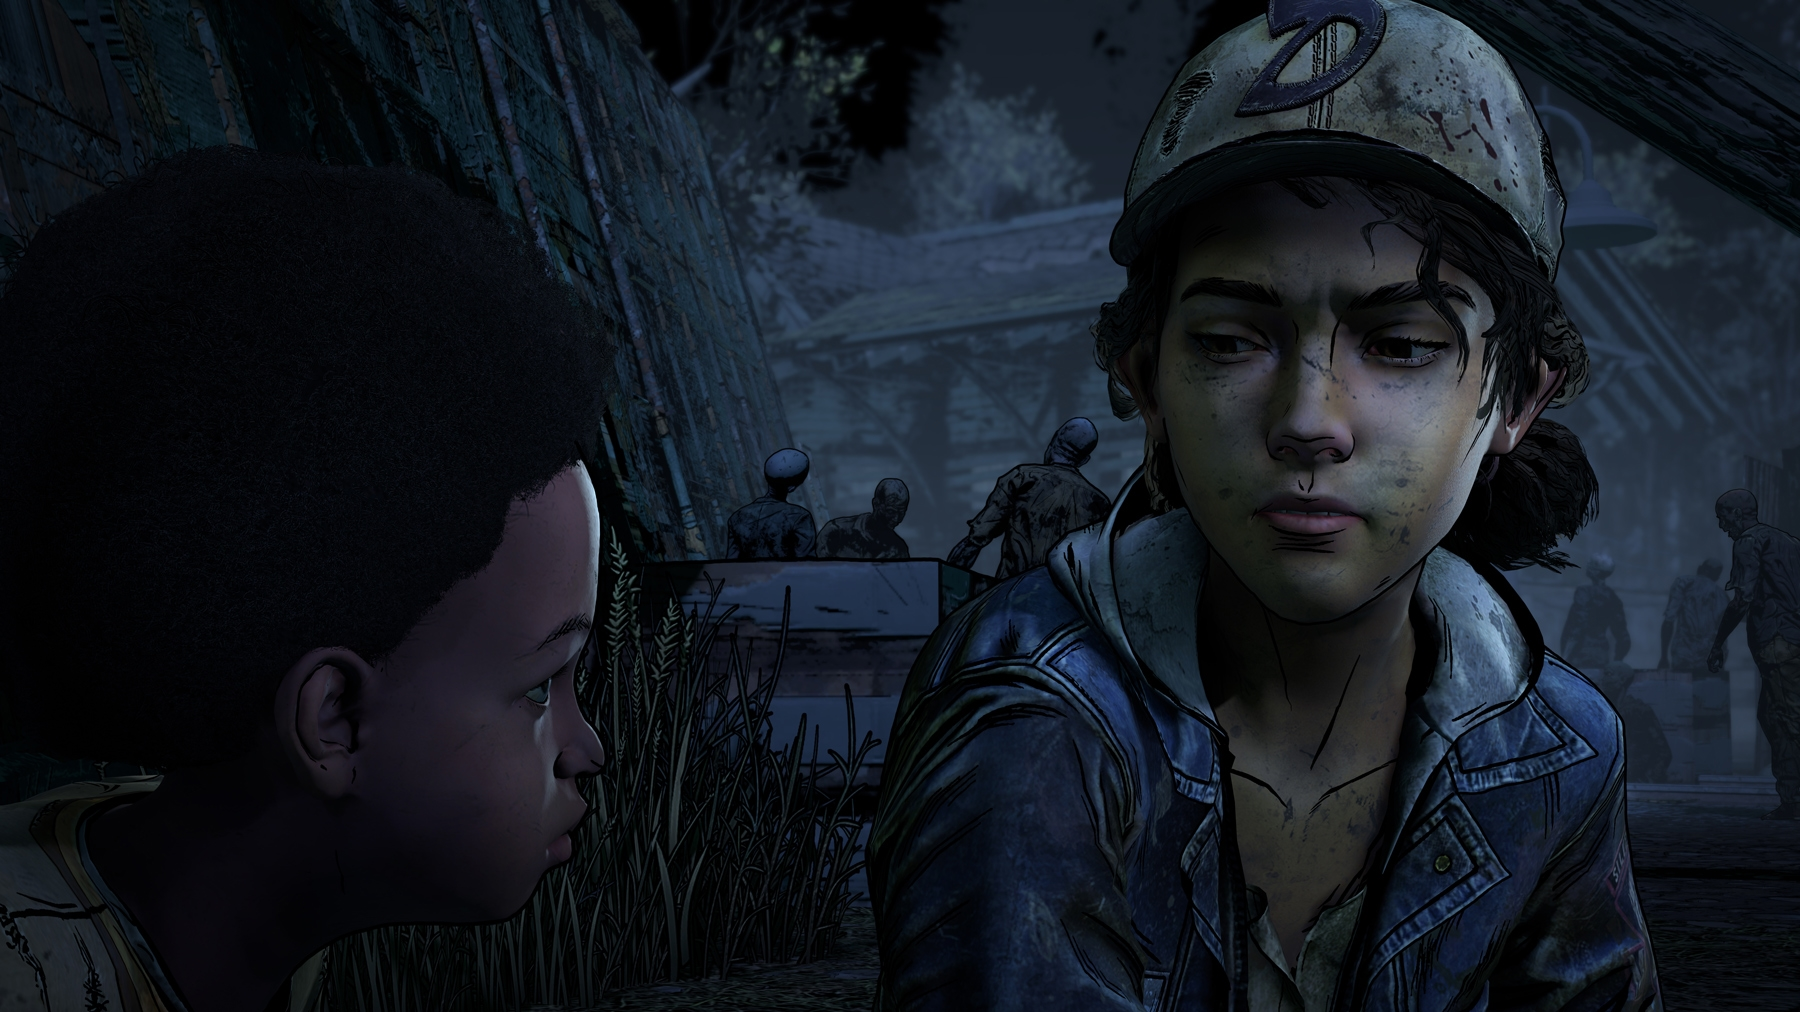 Telltale's quest to end 'The Walking Dead' on a high | DeviceDaily.com